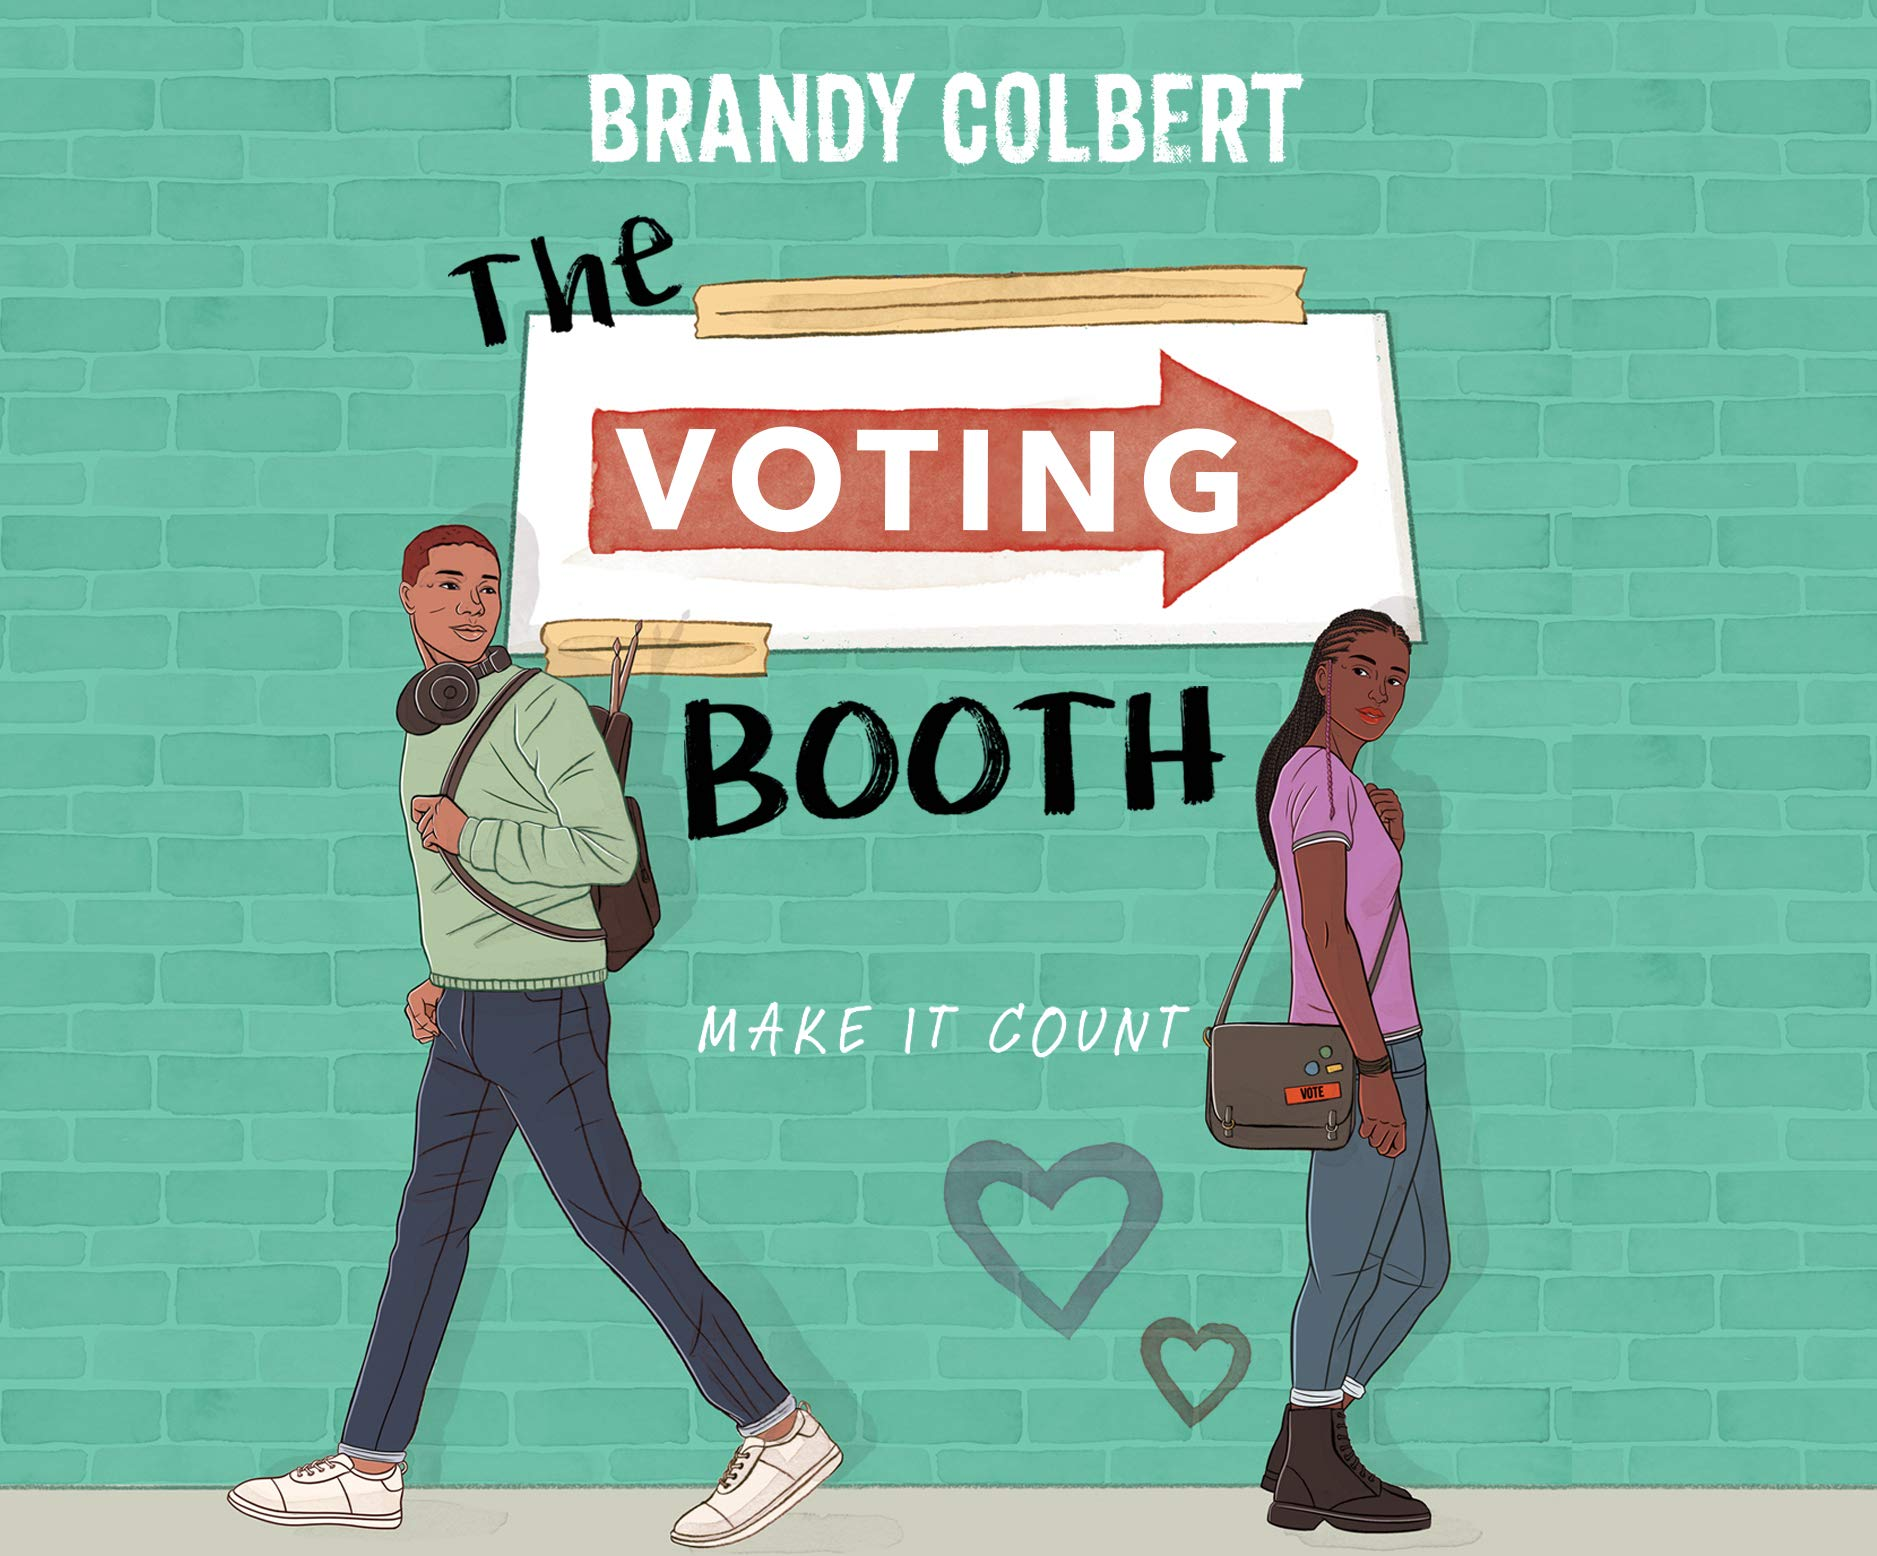 Amazon.com: The Voting Booth (9781662003936): Colbert, Brandy, Eller,  Robin, Hite, Cary: Books